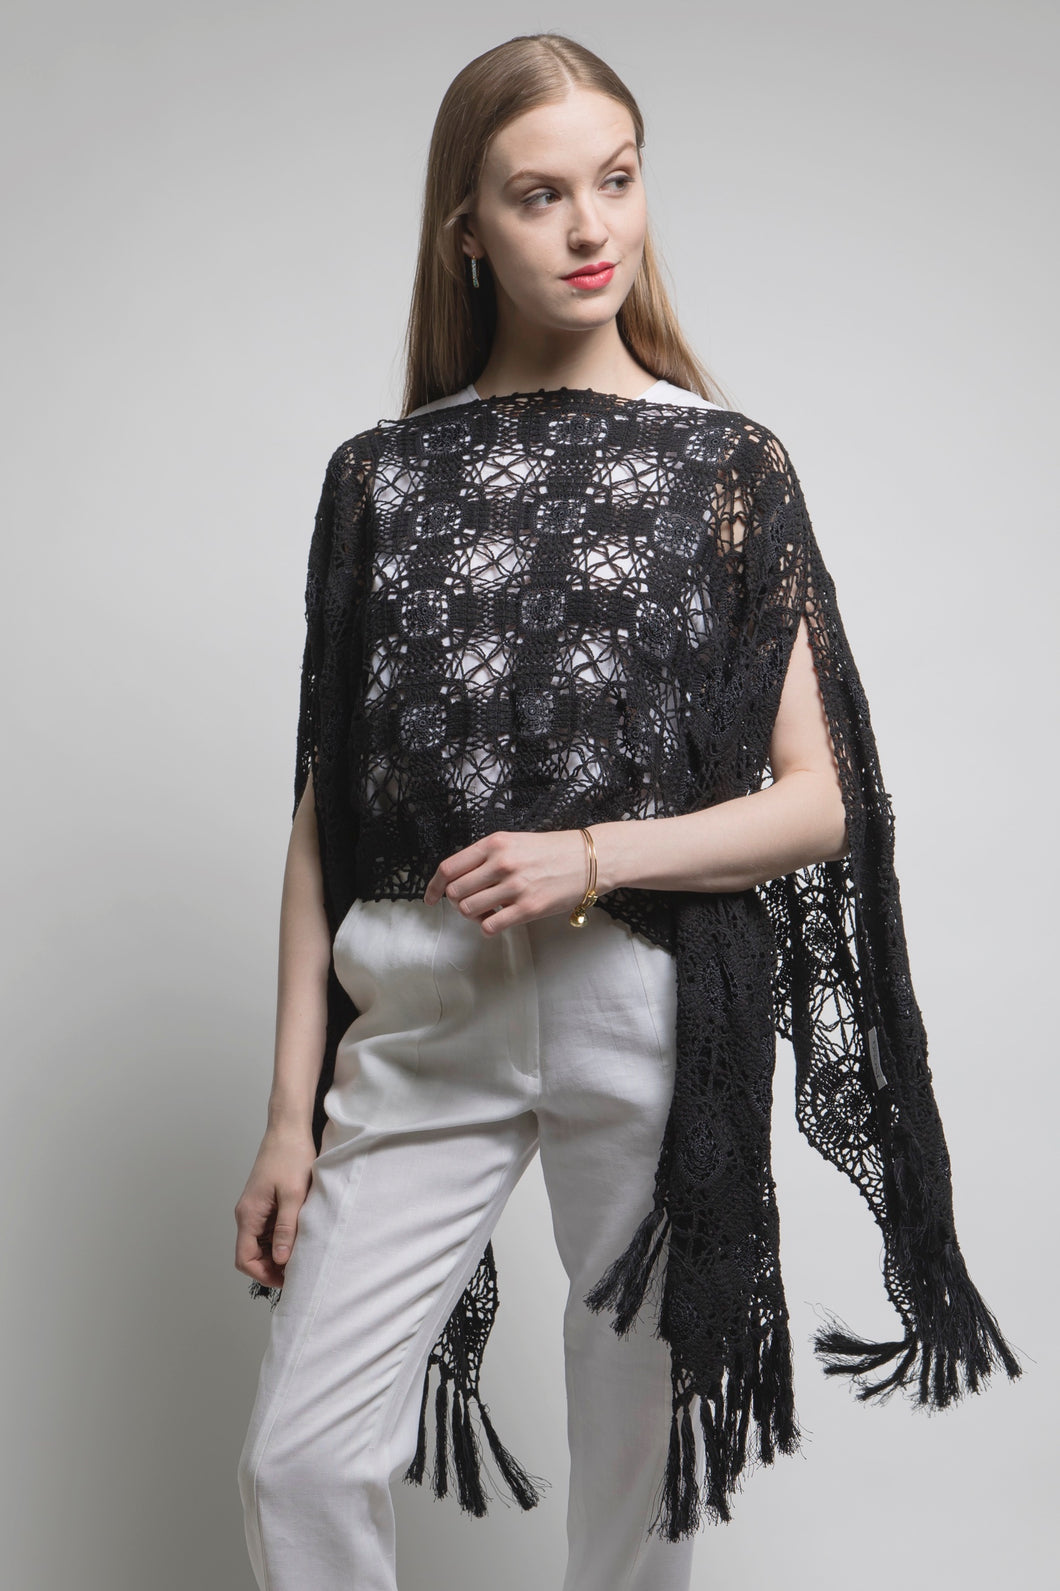 Limited Edition Hand Crochet Lace Poncho Scarf